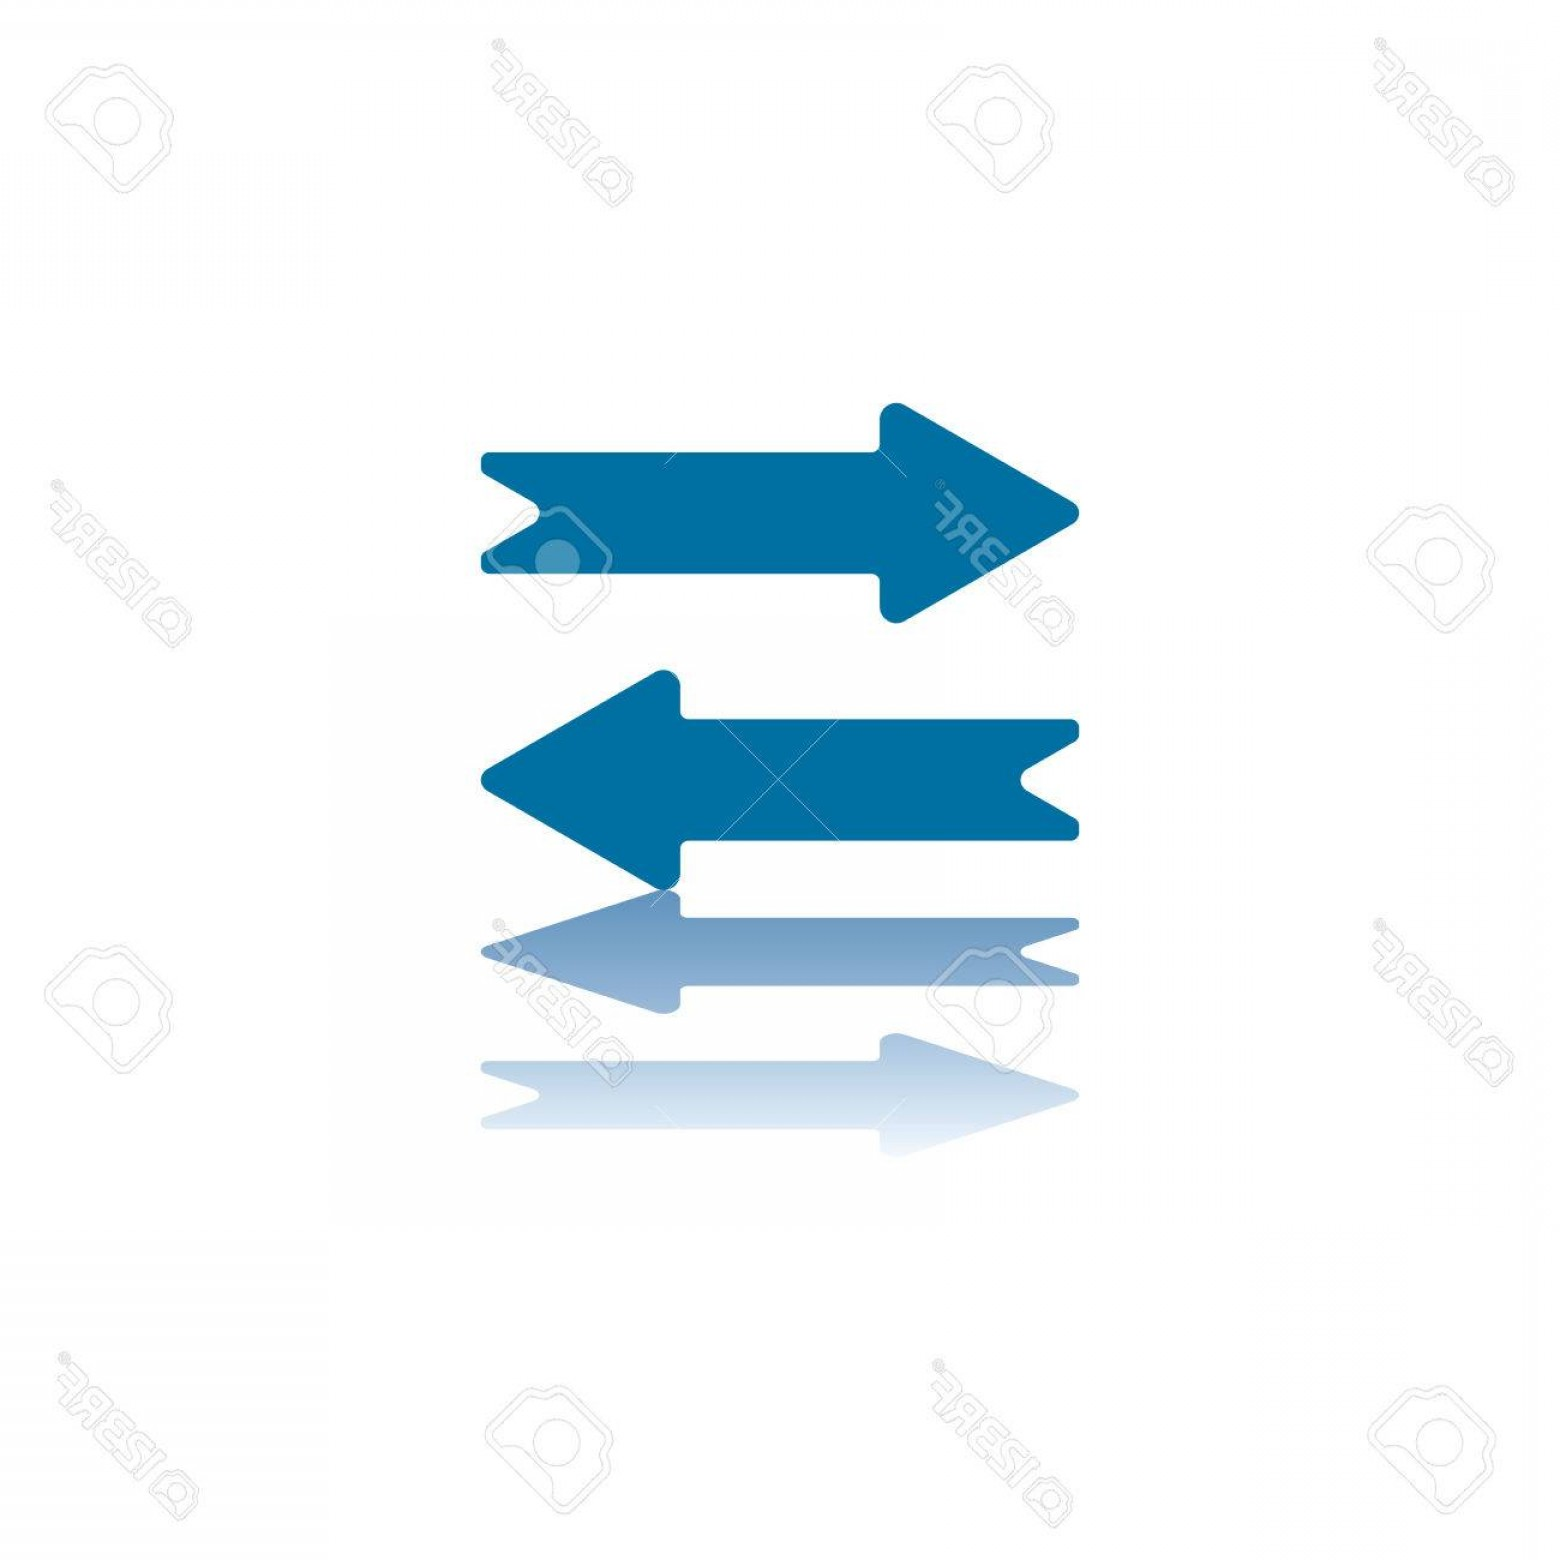 When Two Vectors Are Parallel: Phototwo Parallel Horizontal Arrows Top Pointing Left Bottom Pointing Right